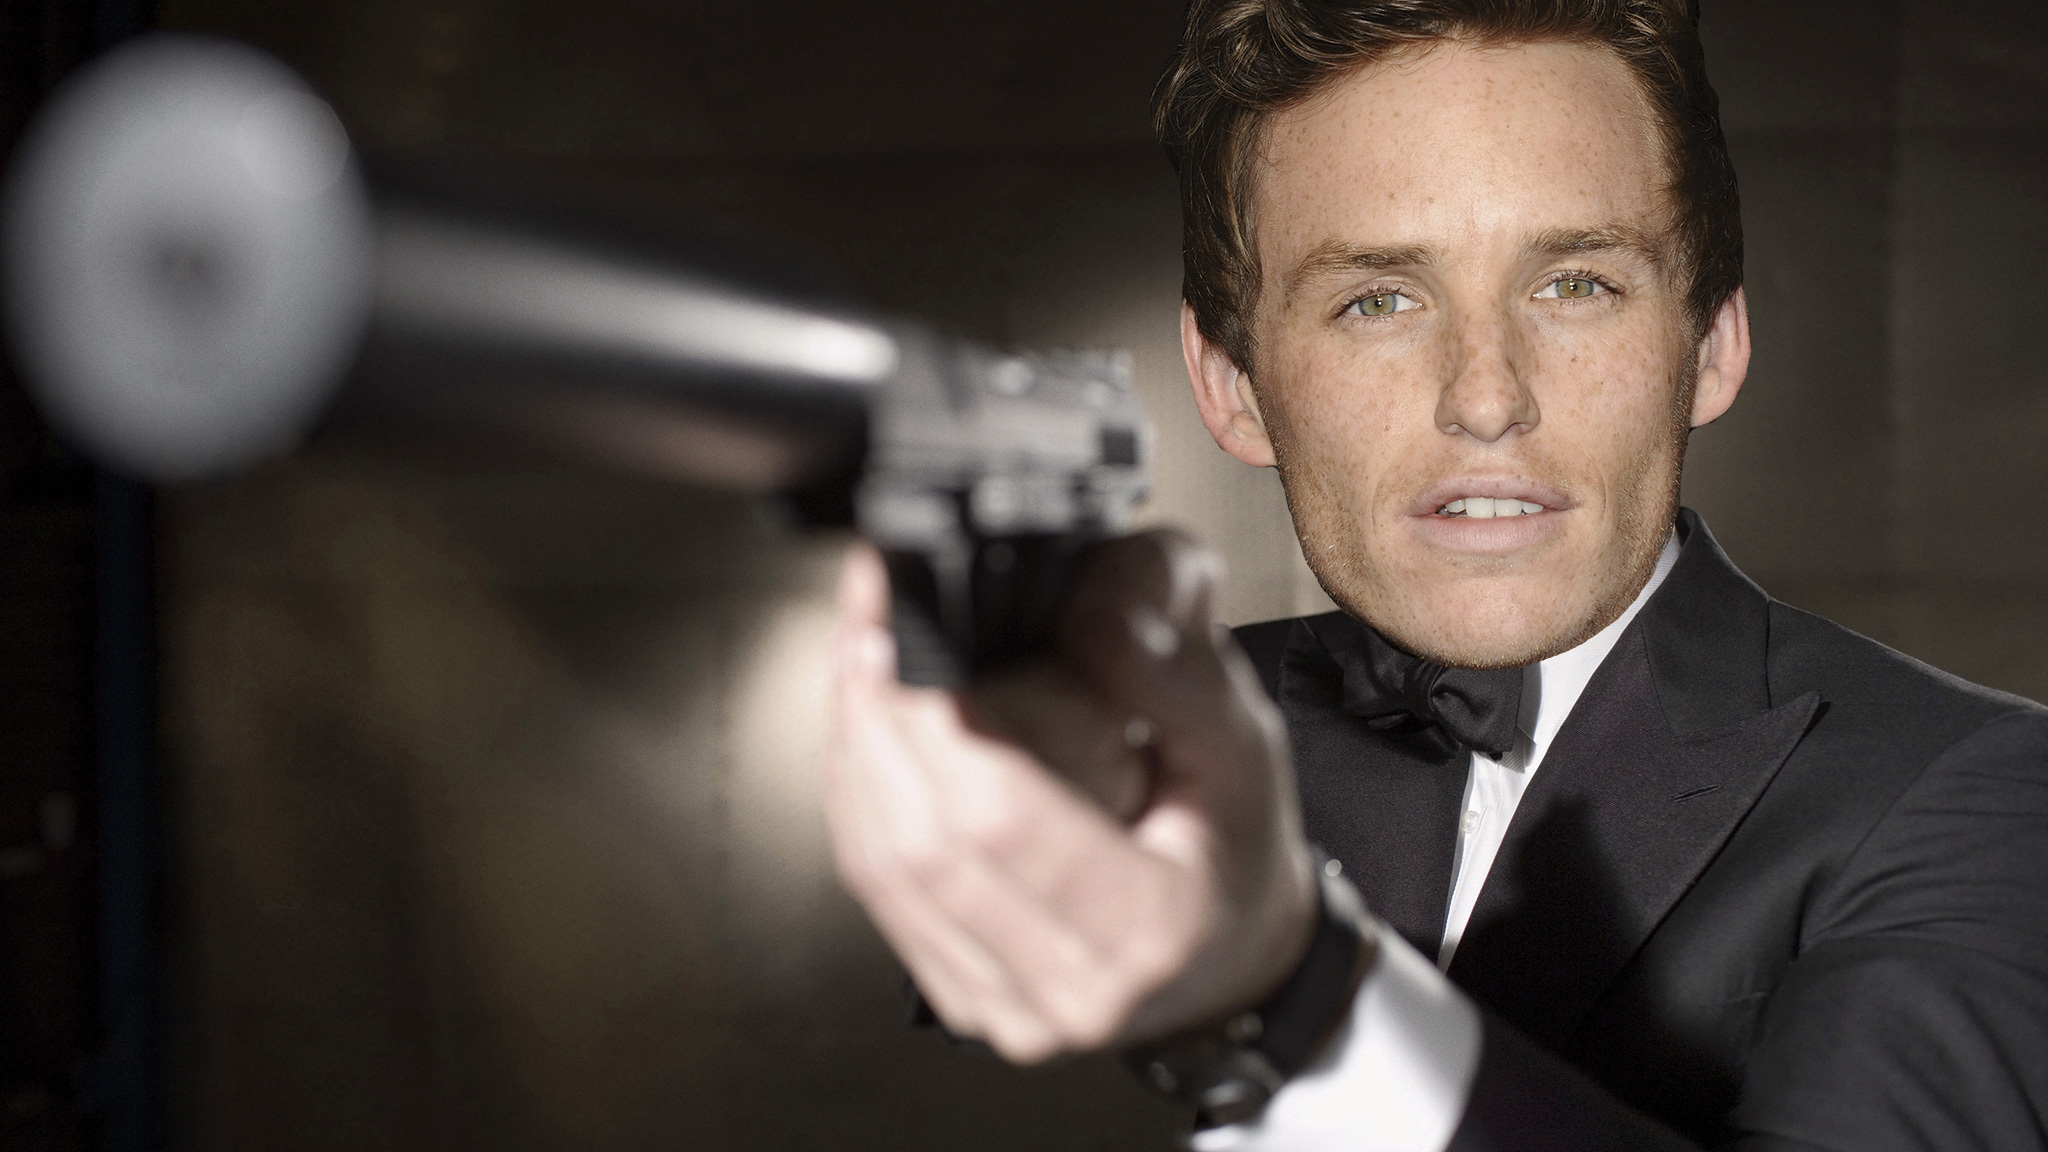 Eddie Redmayne as James Bond